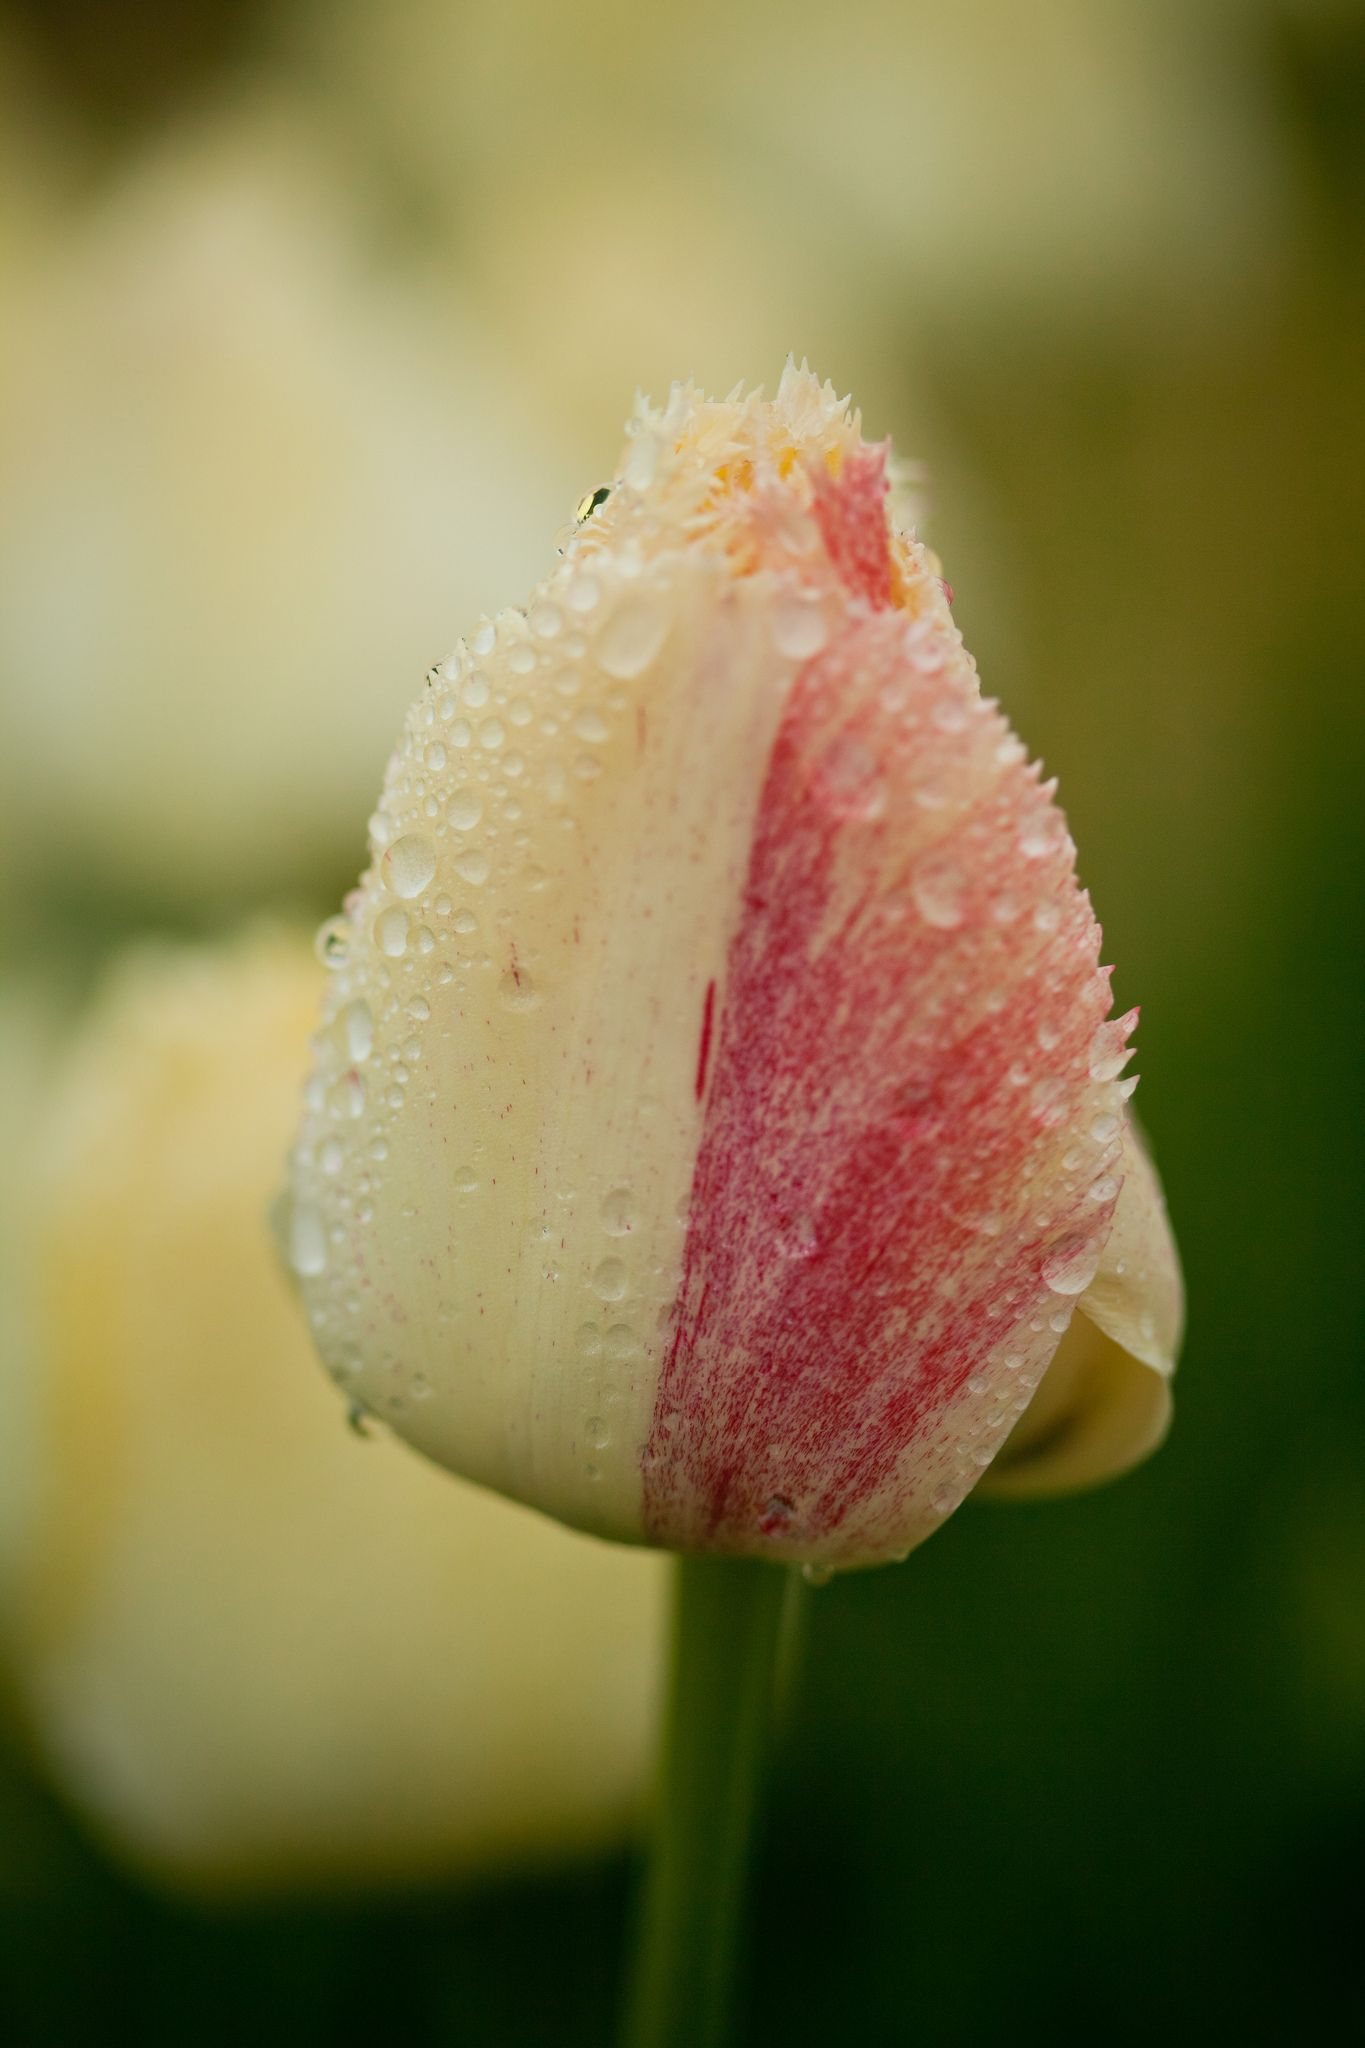 So Beautiful With Raindrops On Flowers Pinterest Flowers And